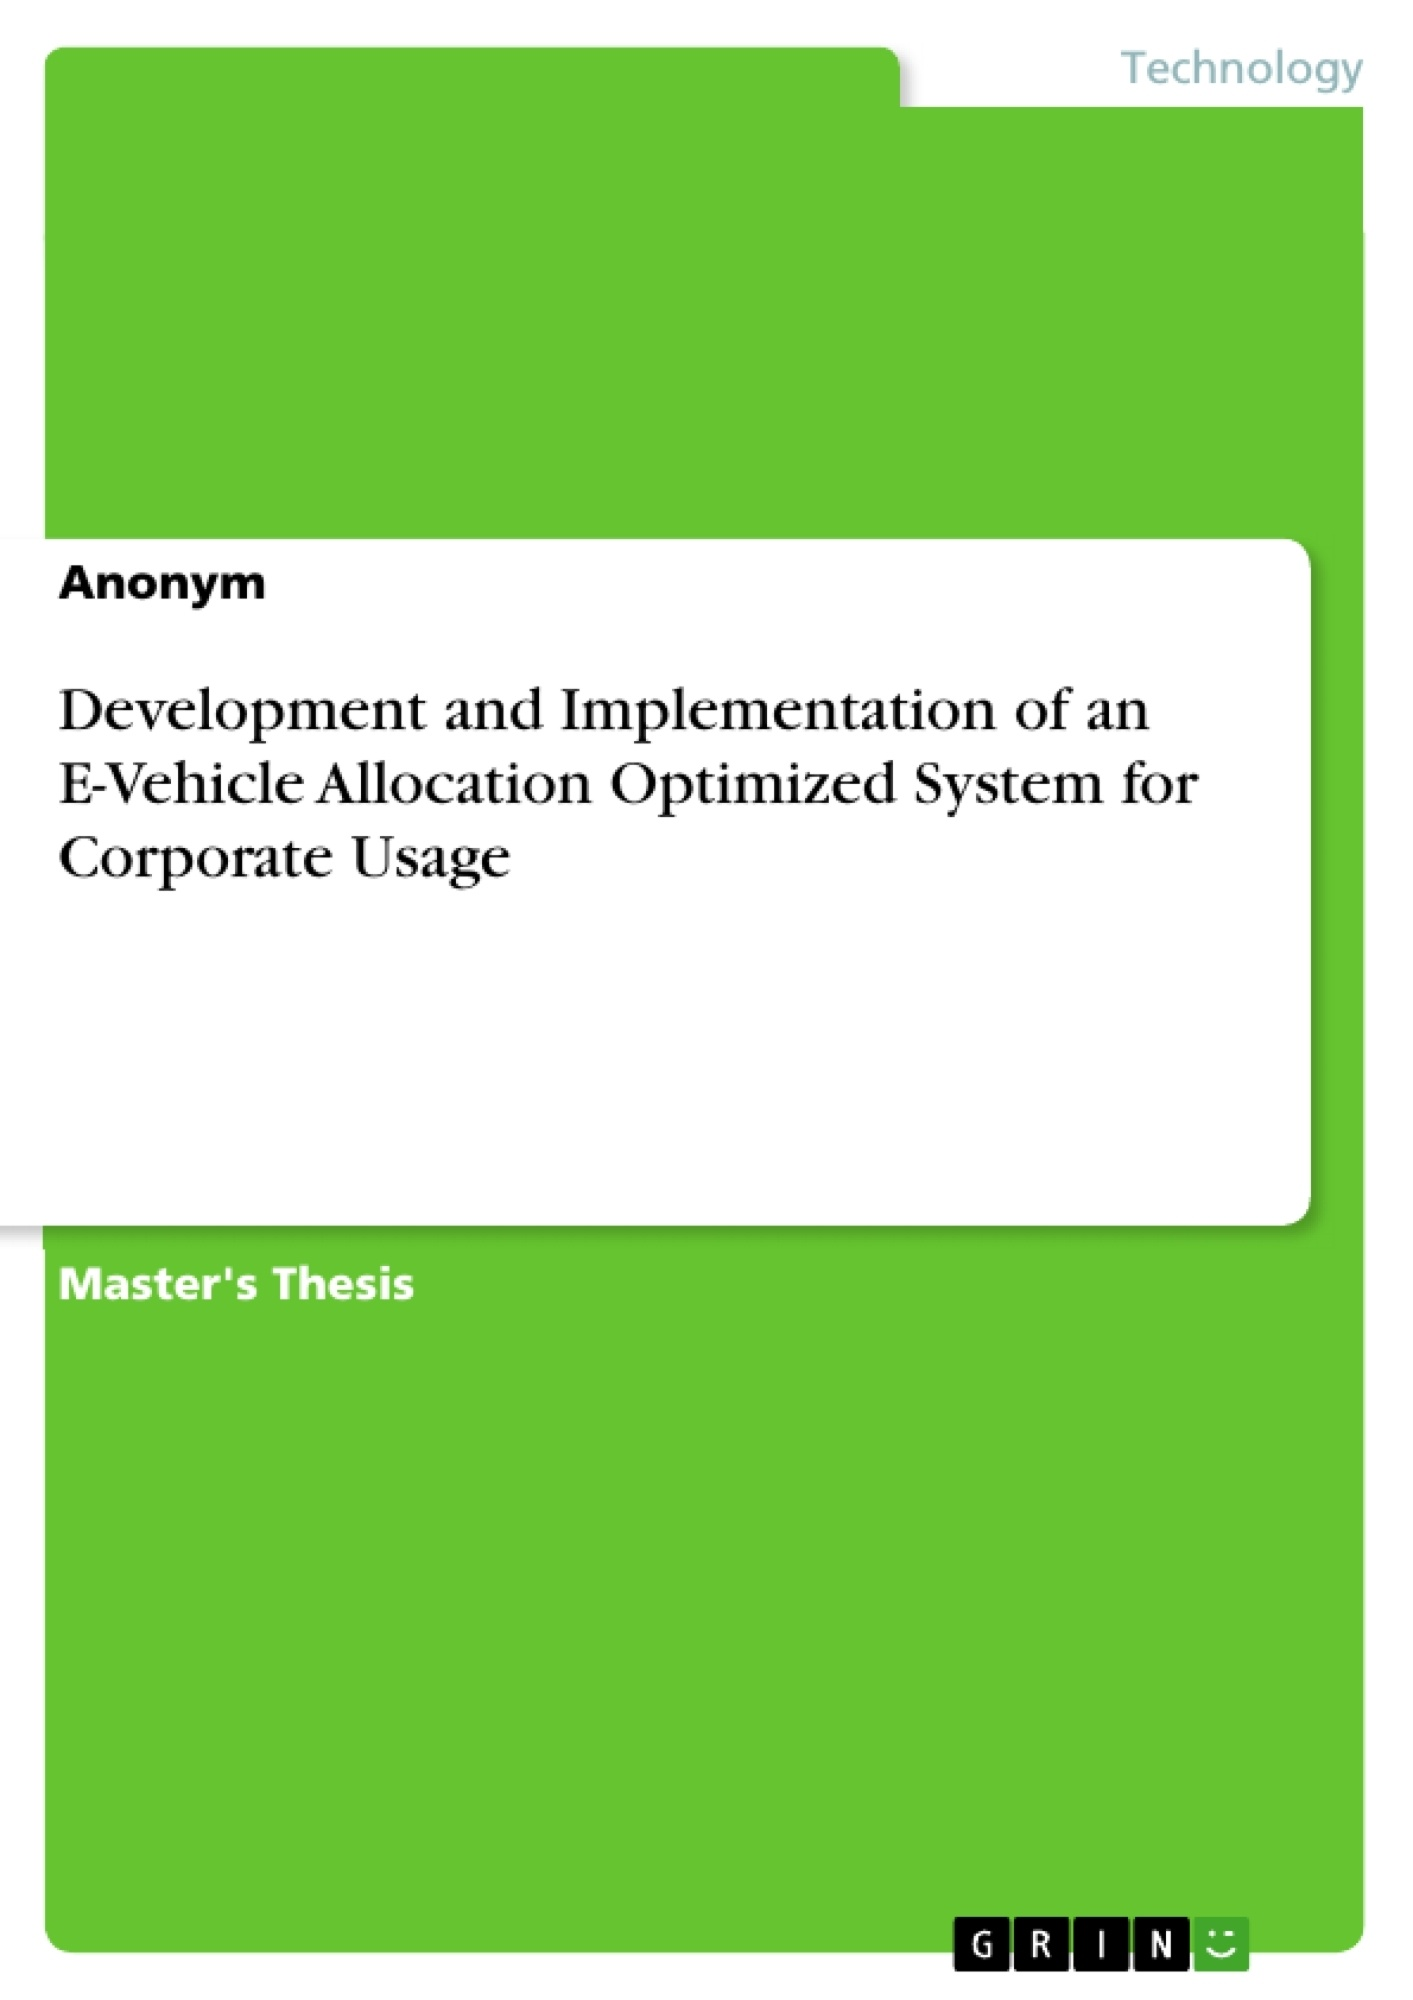 Title: Development and Implementation of an E-Vehicle Allocation Optimized System for Corporate Usage